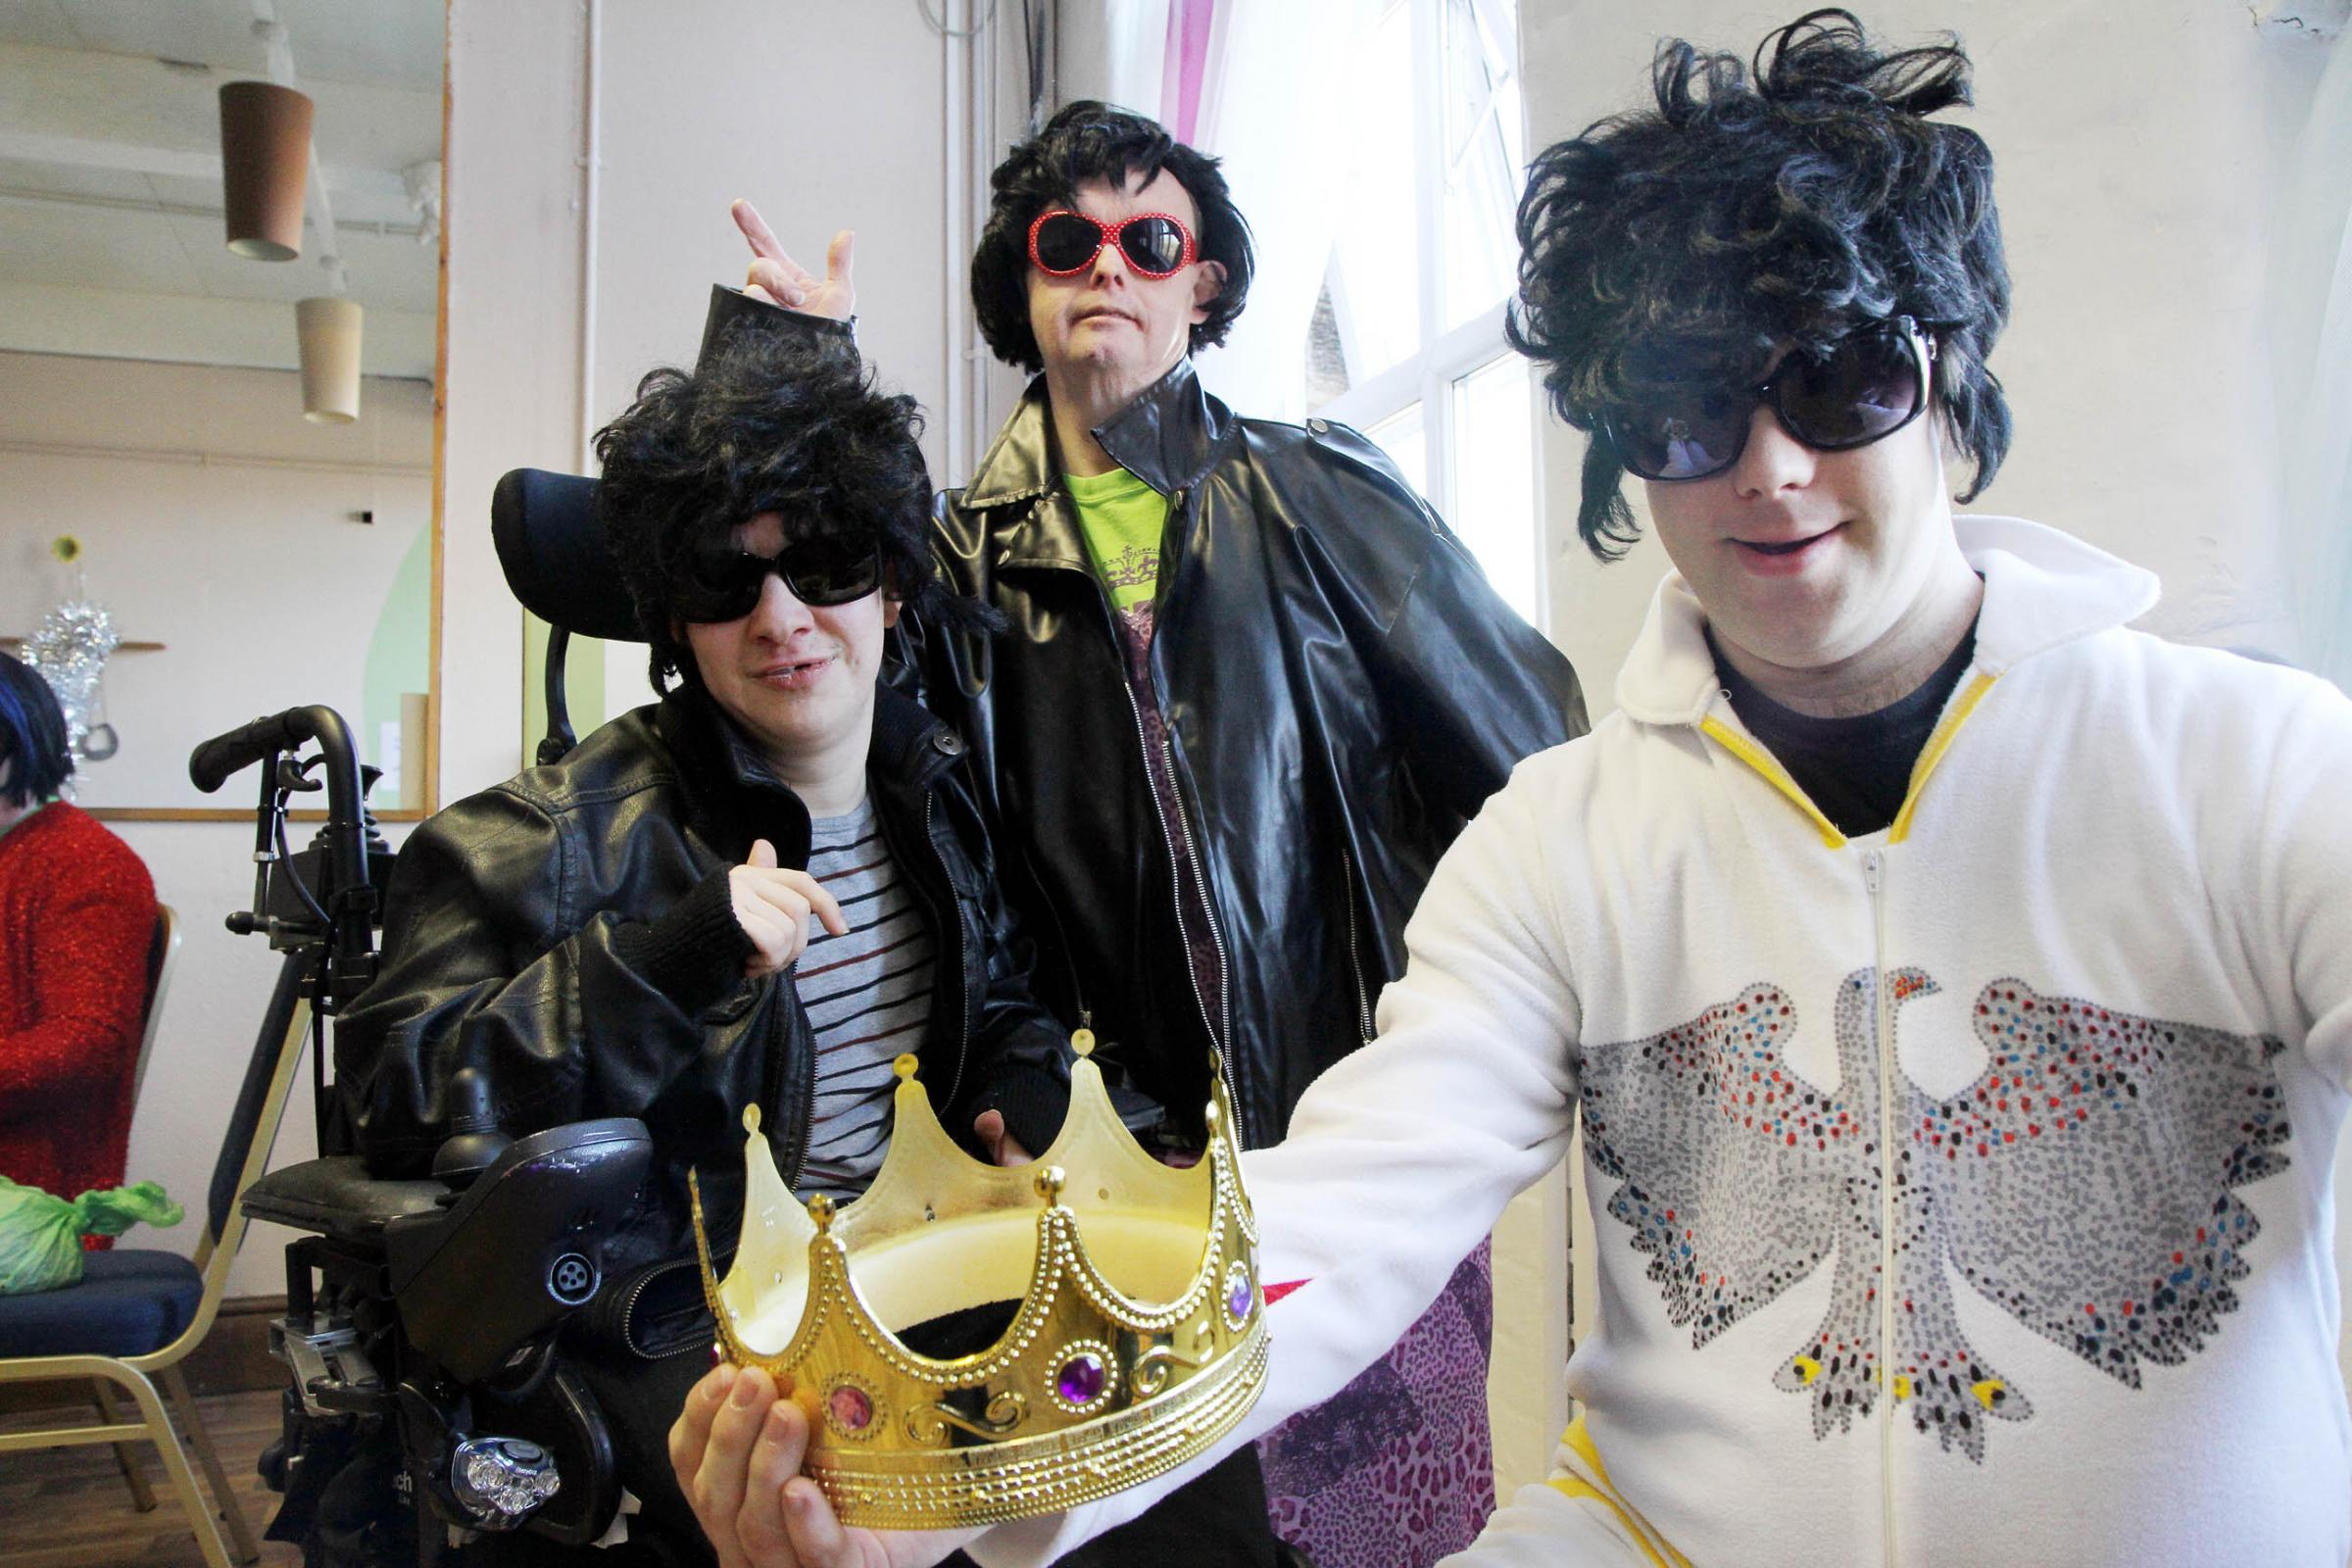 Vying for the King's crown were (from left) Big Soup's Elvis impersonators Matthew Rayner, Simon Gorman and David Parr